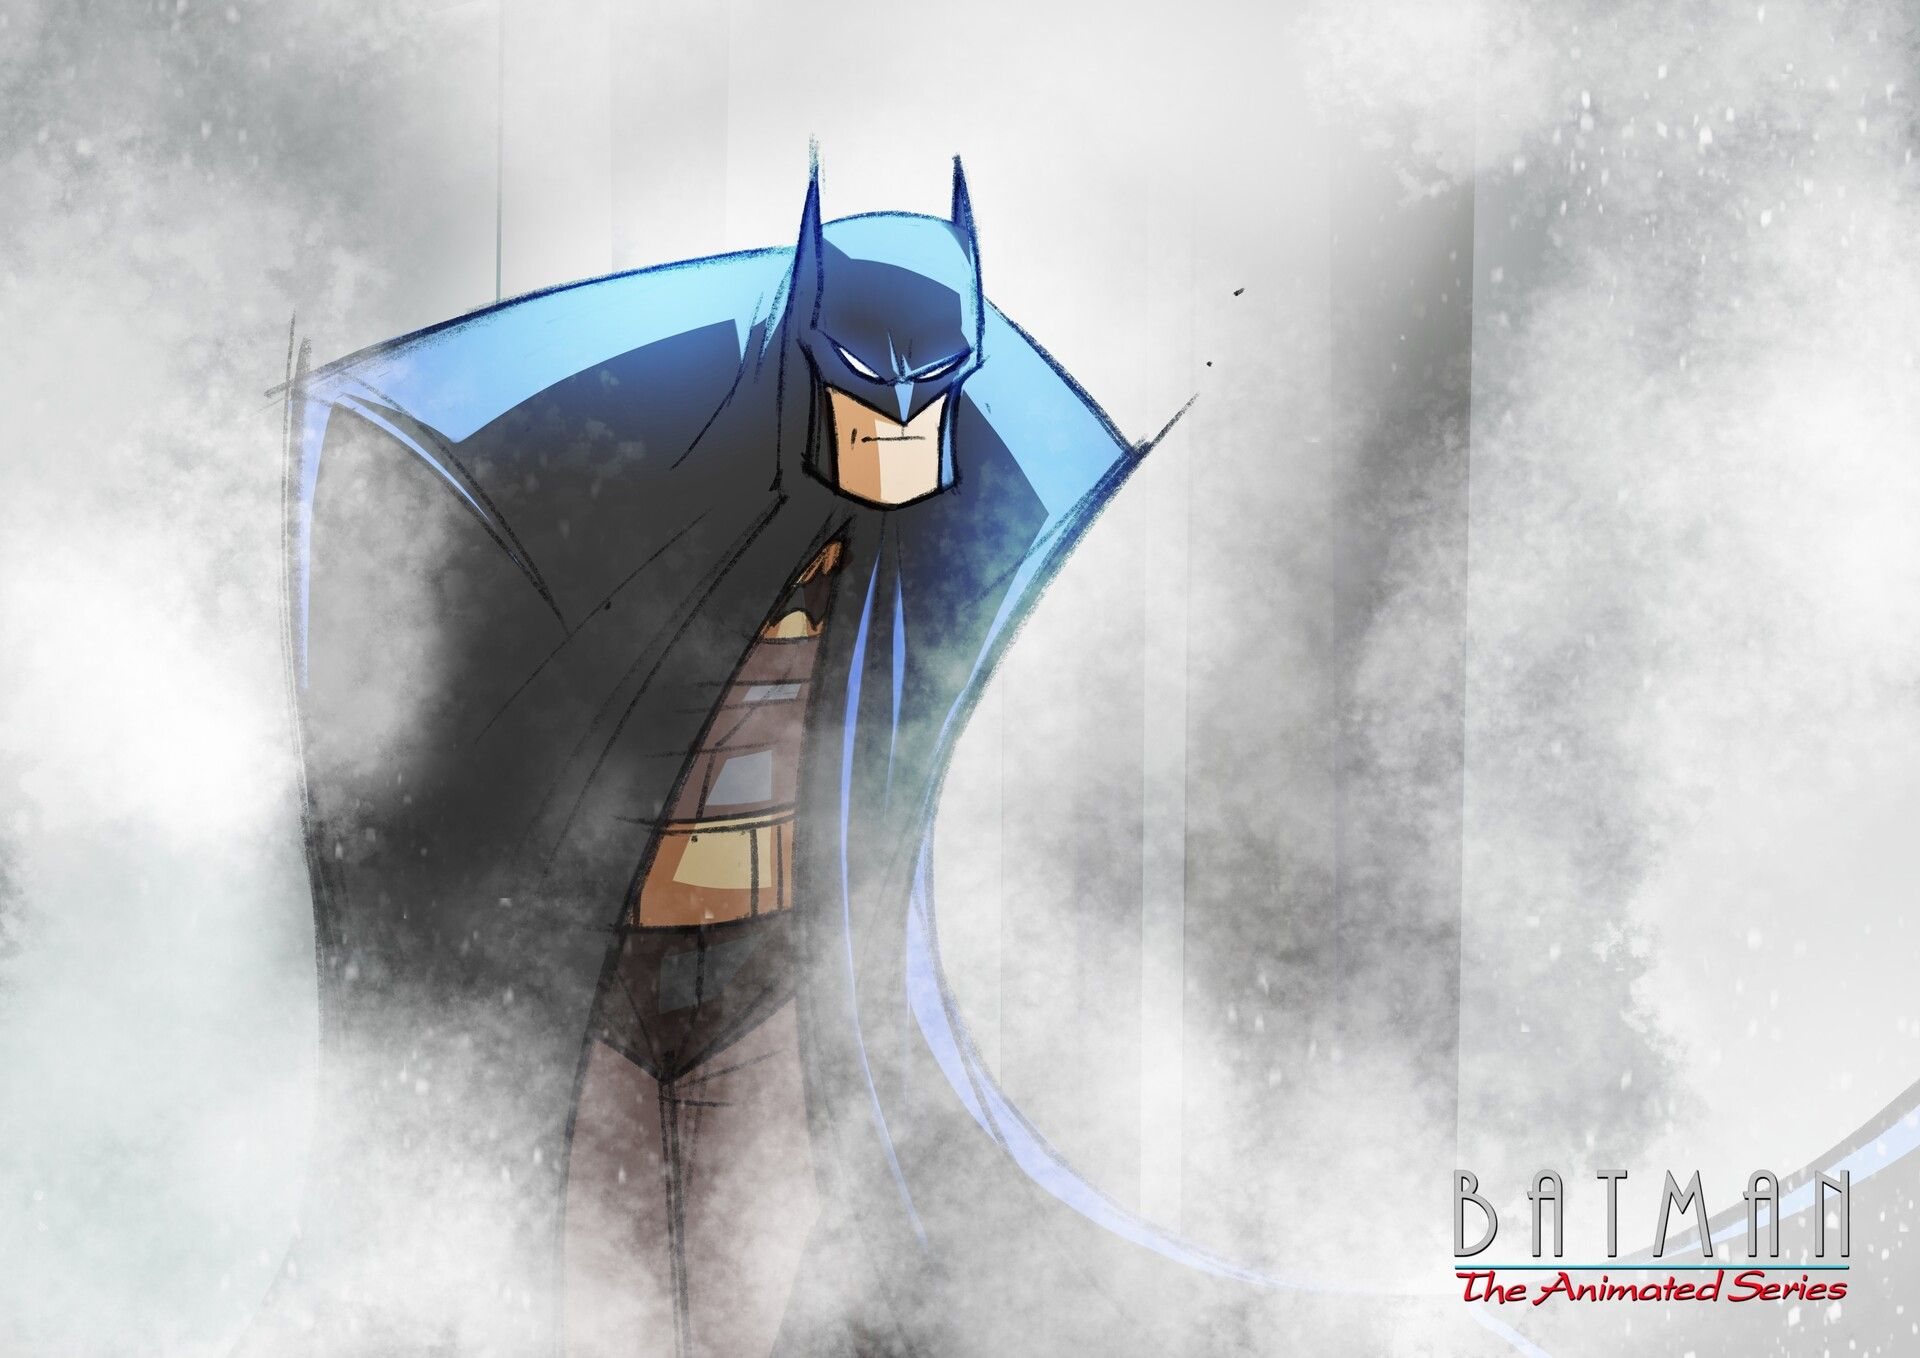 Batman The Animated Series By Kevin Shahlast Night I Rewatched Mask Of The Phantasm To Rekindle My Love For Batman Superhero Art Batman The Animated Series